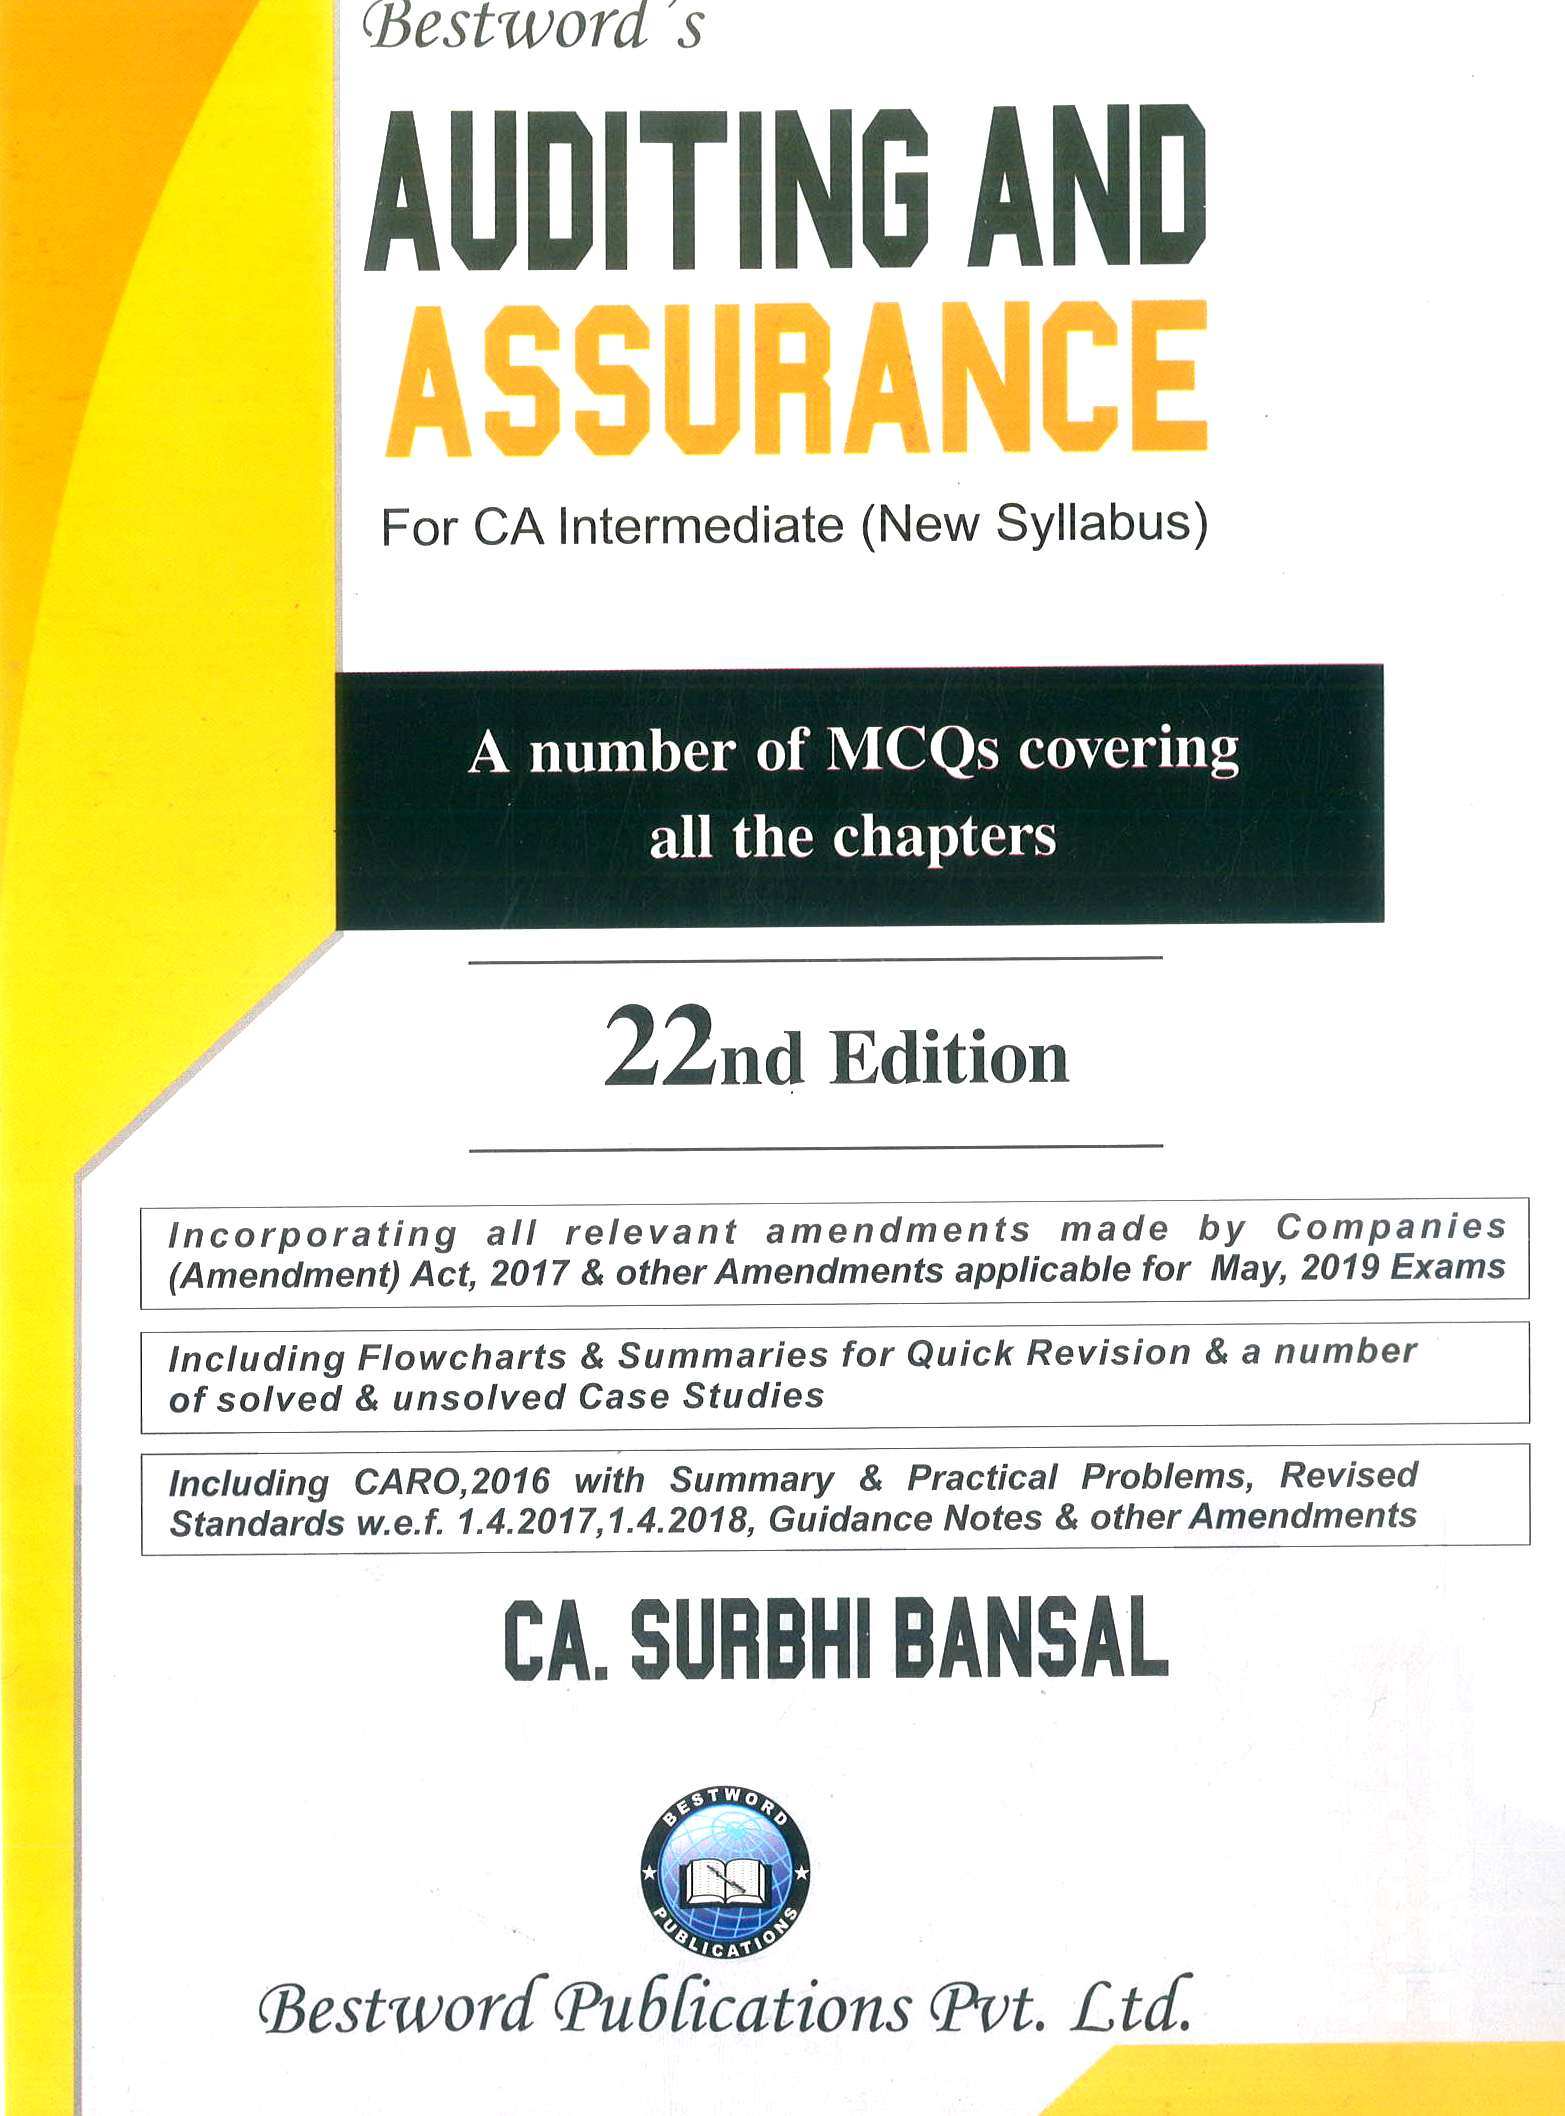 Bestword Auditing and Assurance for CA Intermediate (New Syllabus) by CA Surbhi bansal Edition 2018 for May 2019 Exam